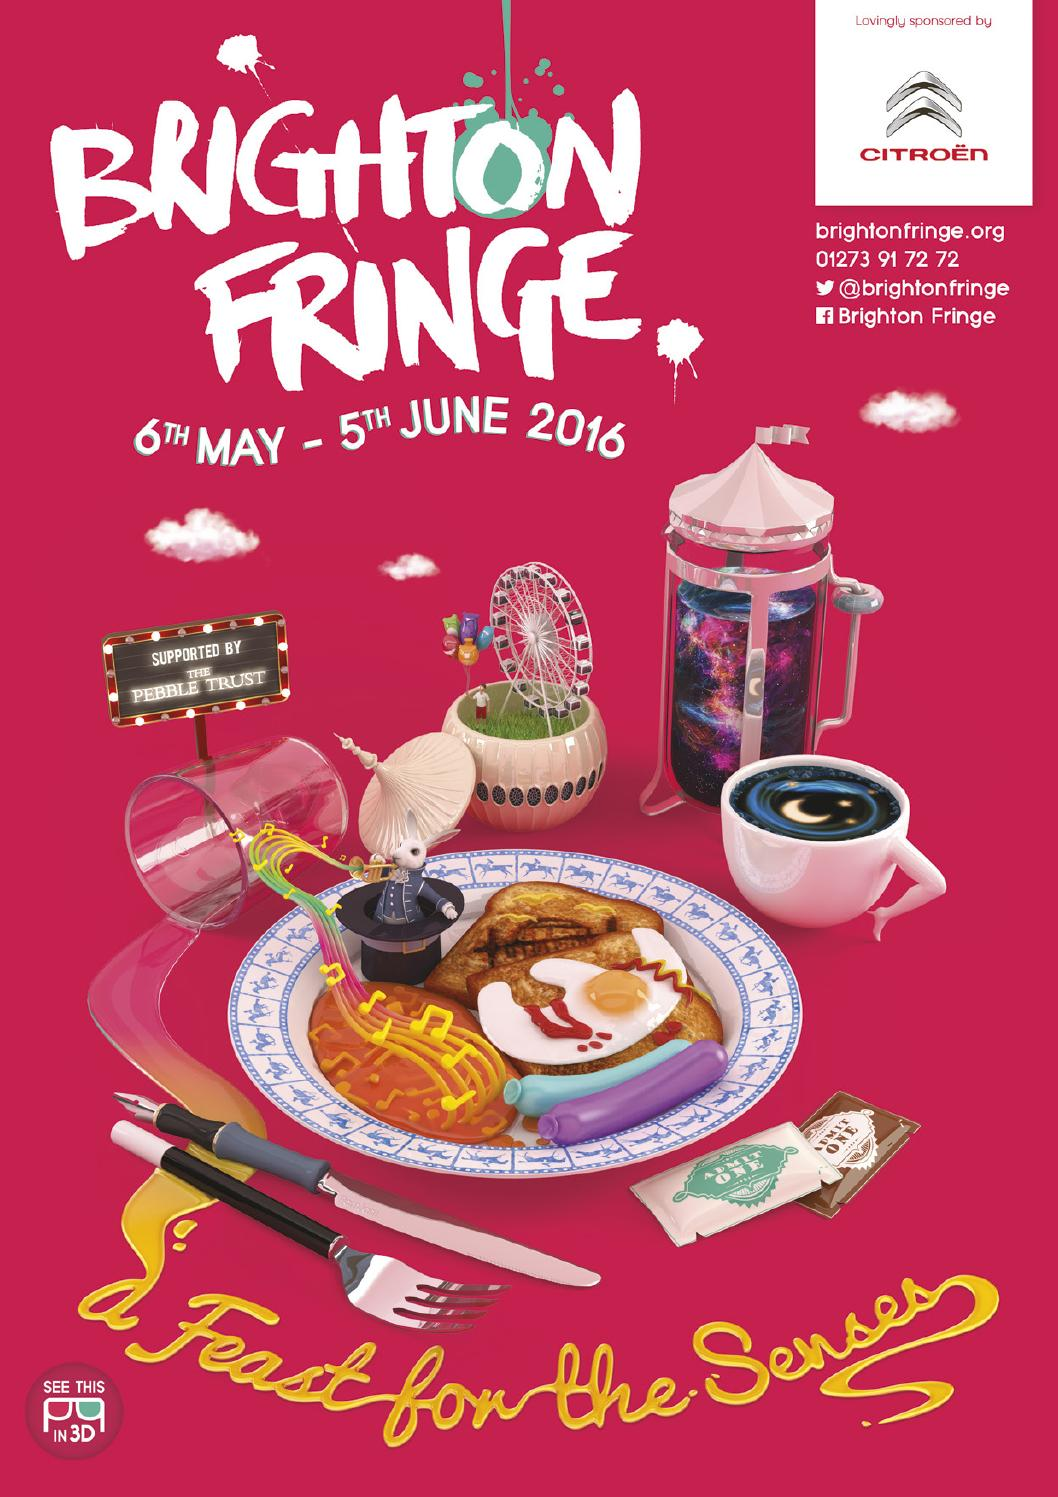 Brighton Fringe Brochure 2016 by Brighton Fringe - issuu